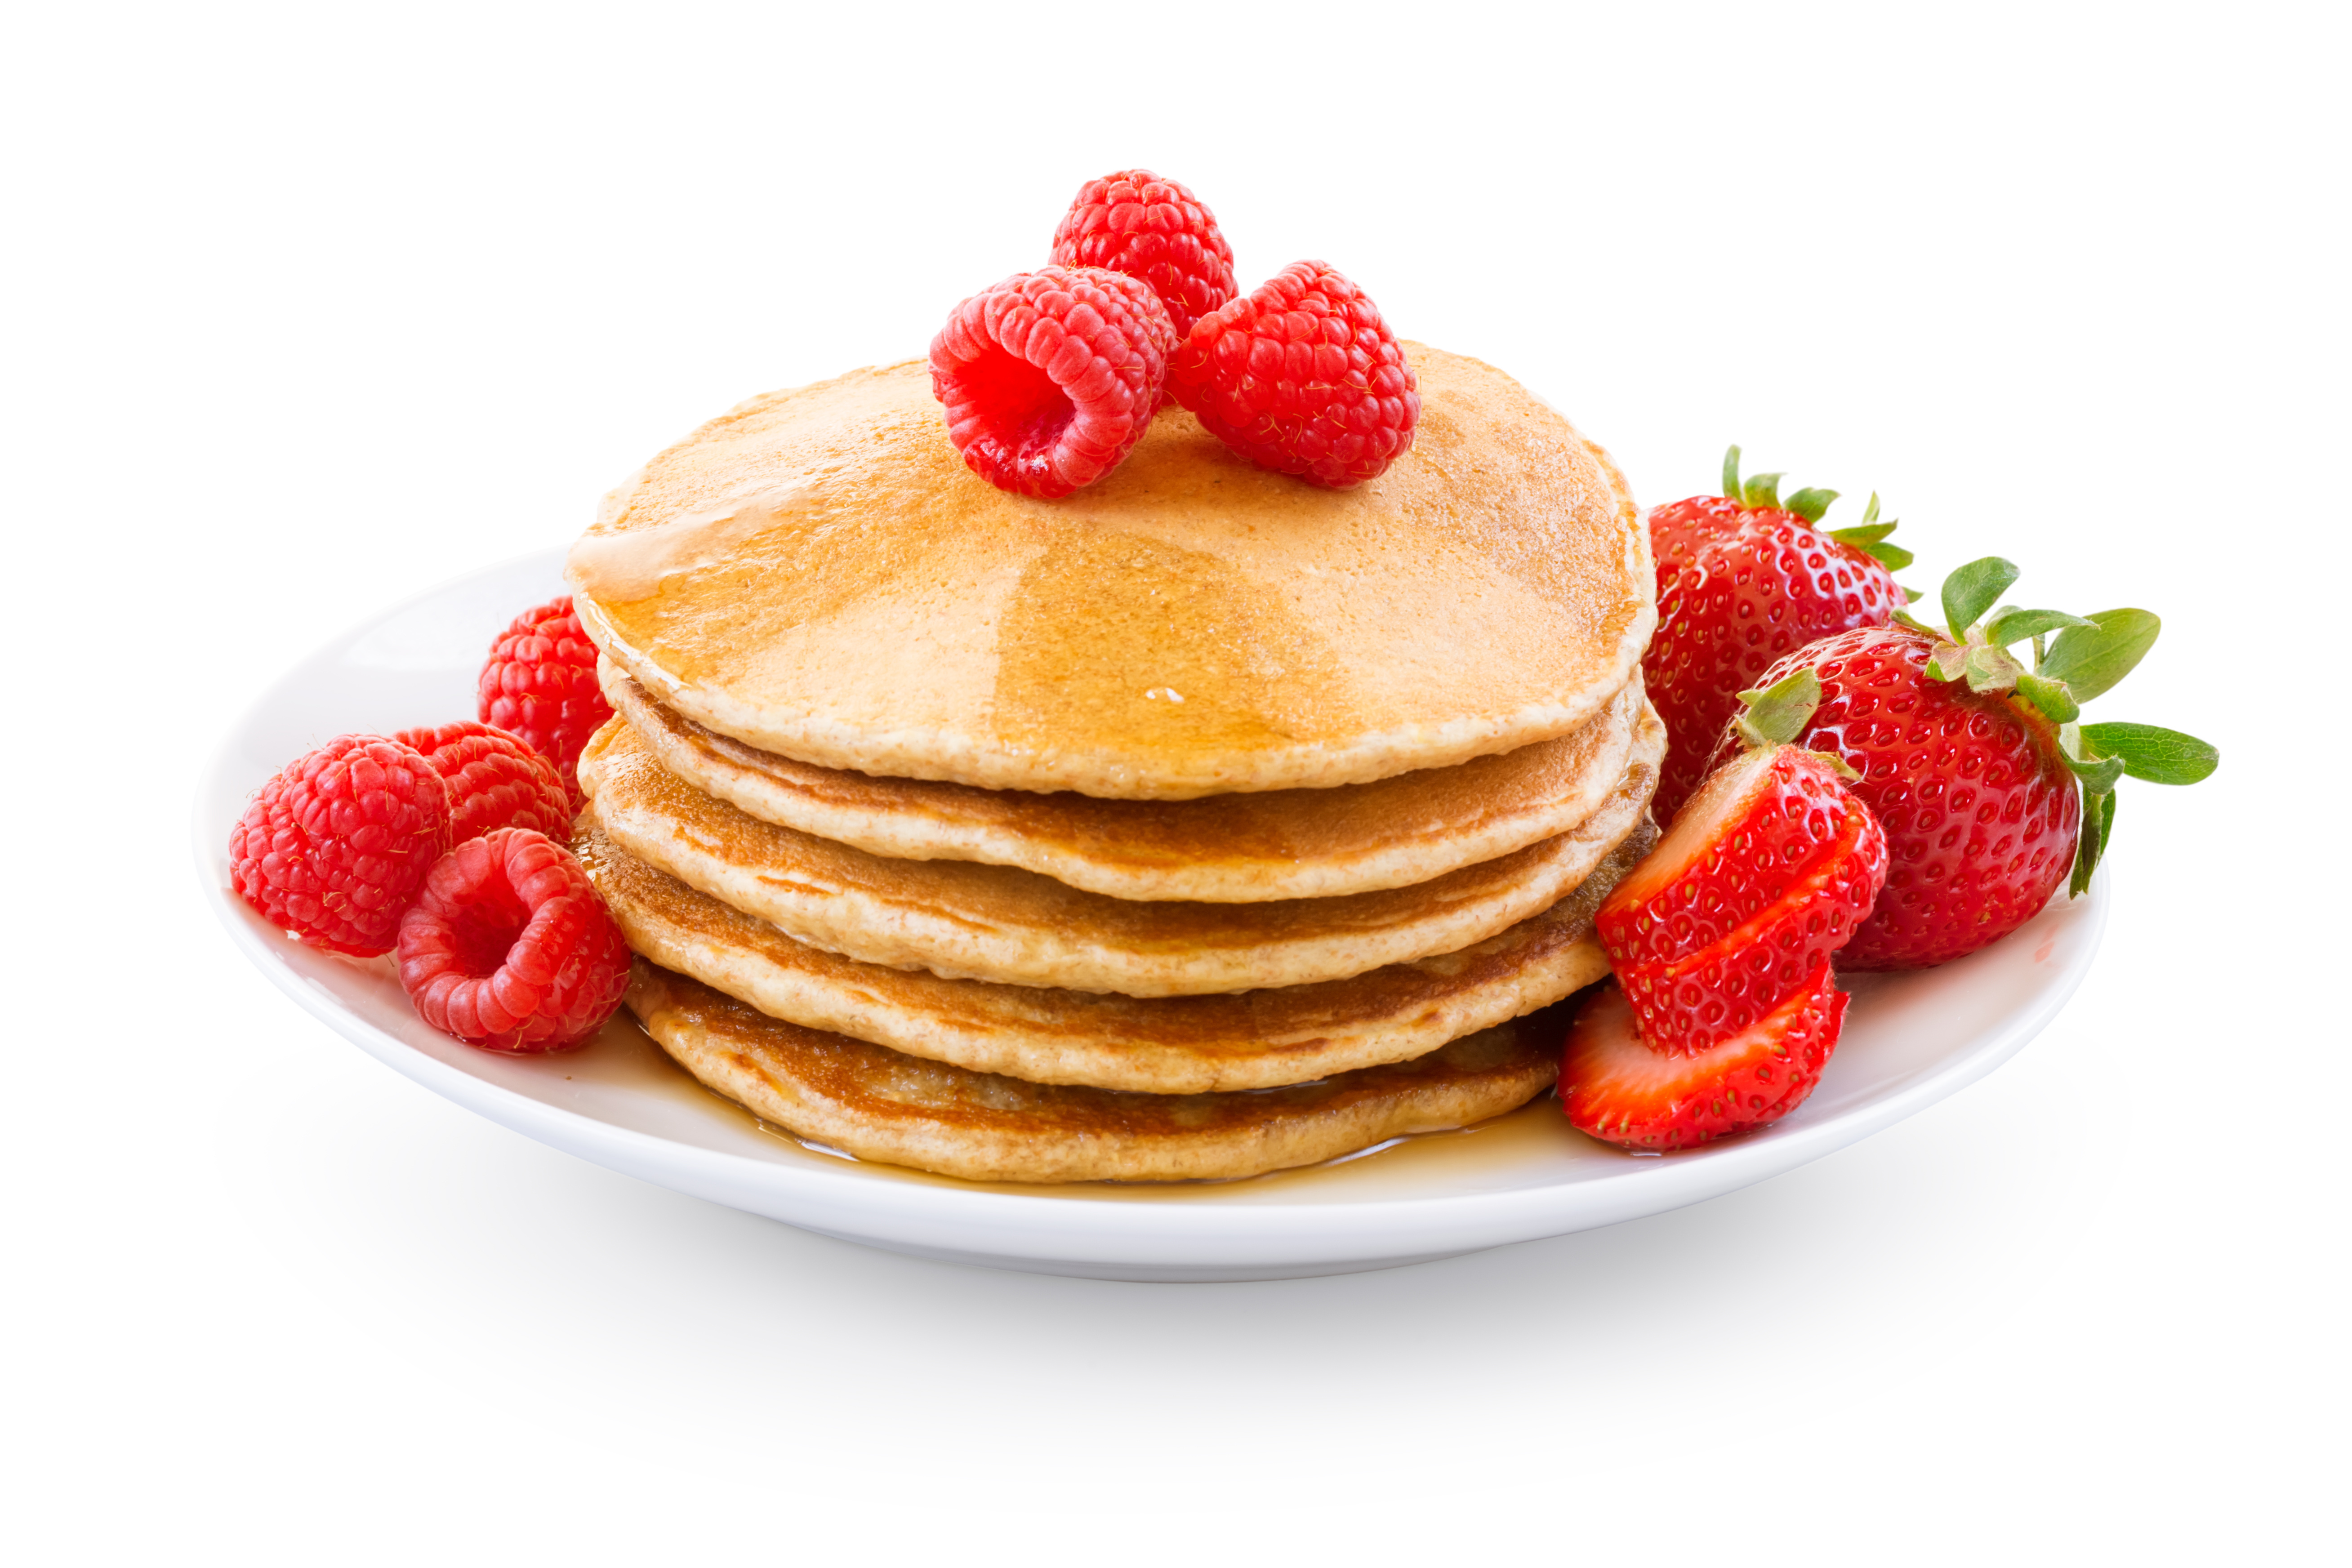 Pancakes with berries on a plate over white background.